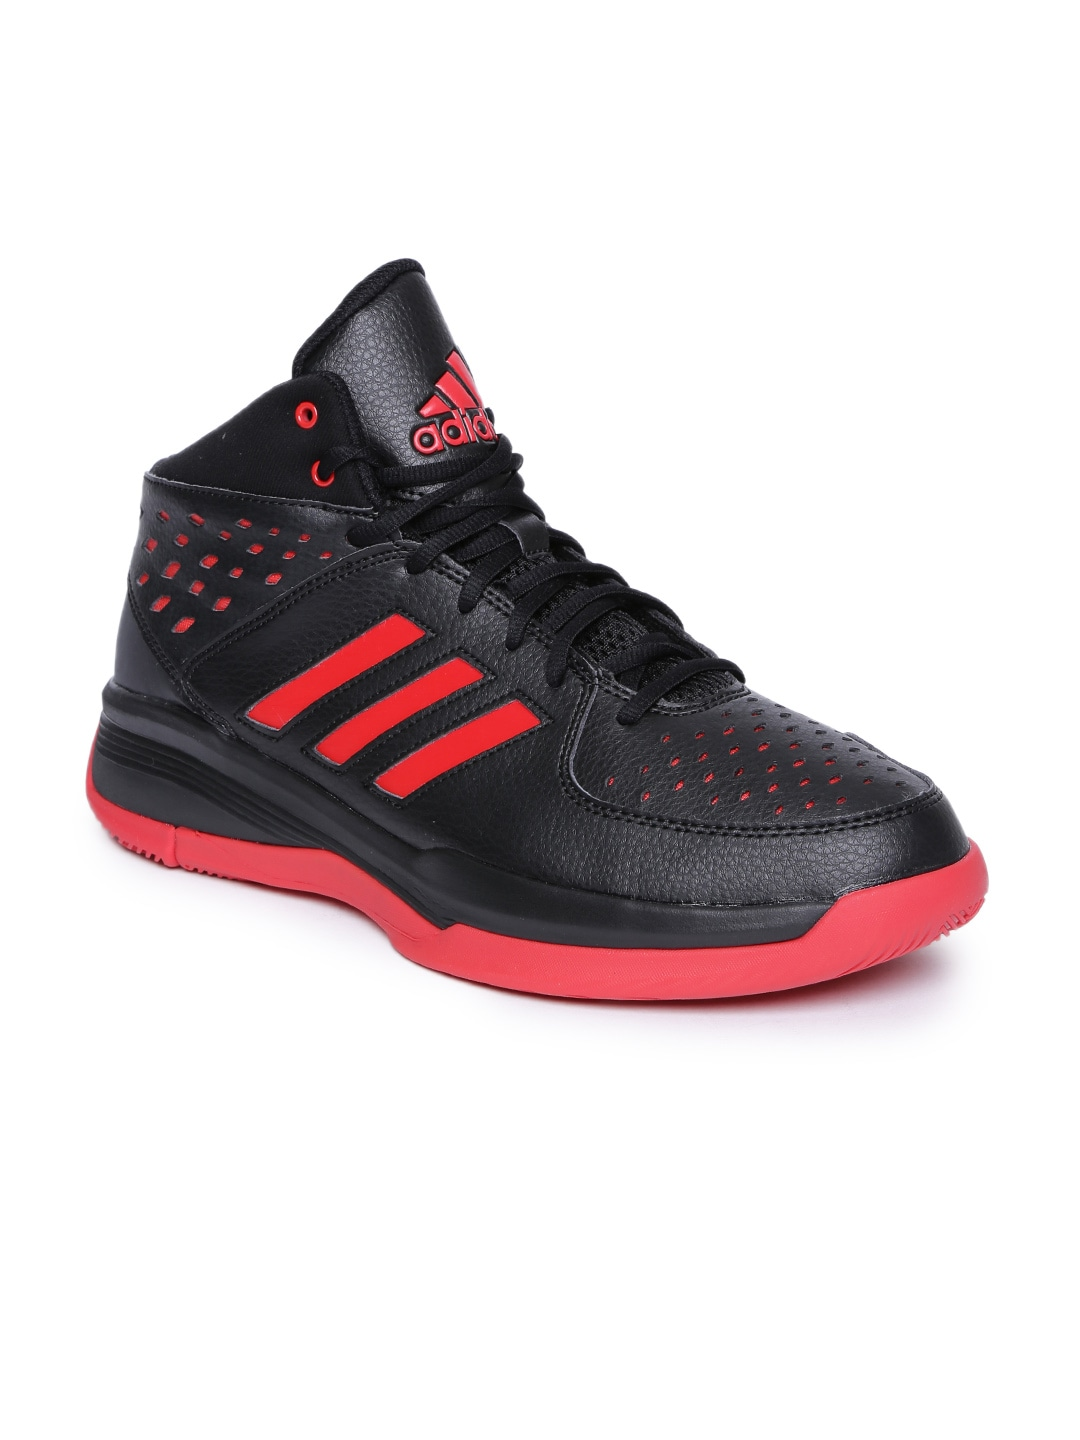 a84cd7c7af21 Buy ADIDAS Men Navy And Fluorescent Green Mid Top Basecut 16 ...